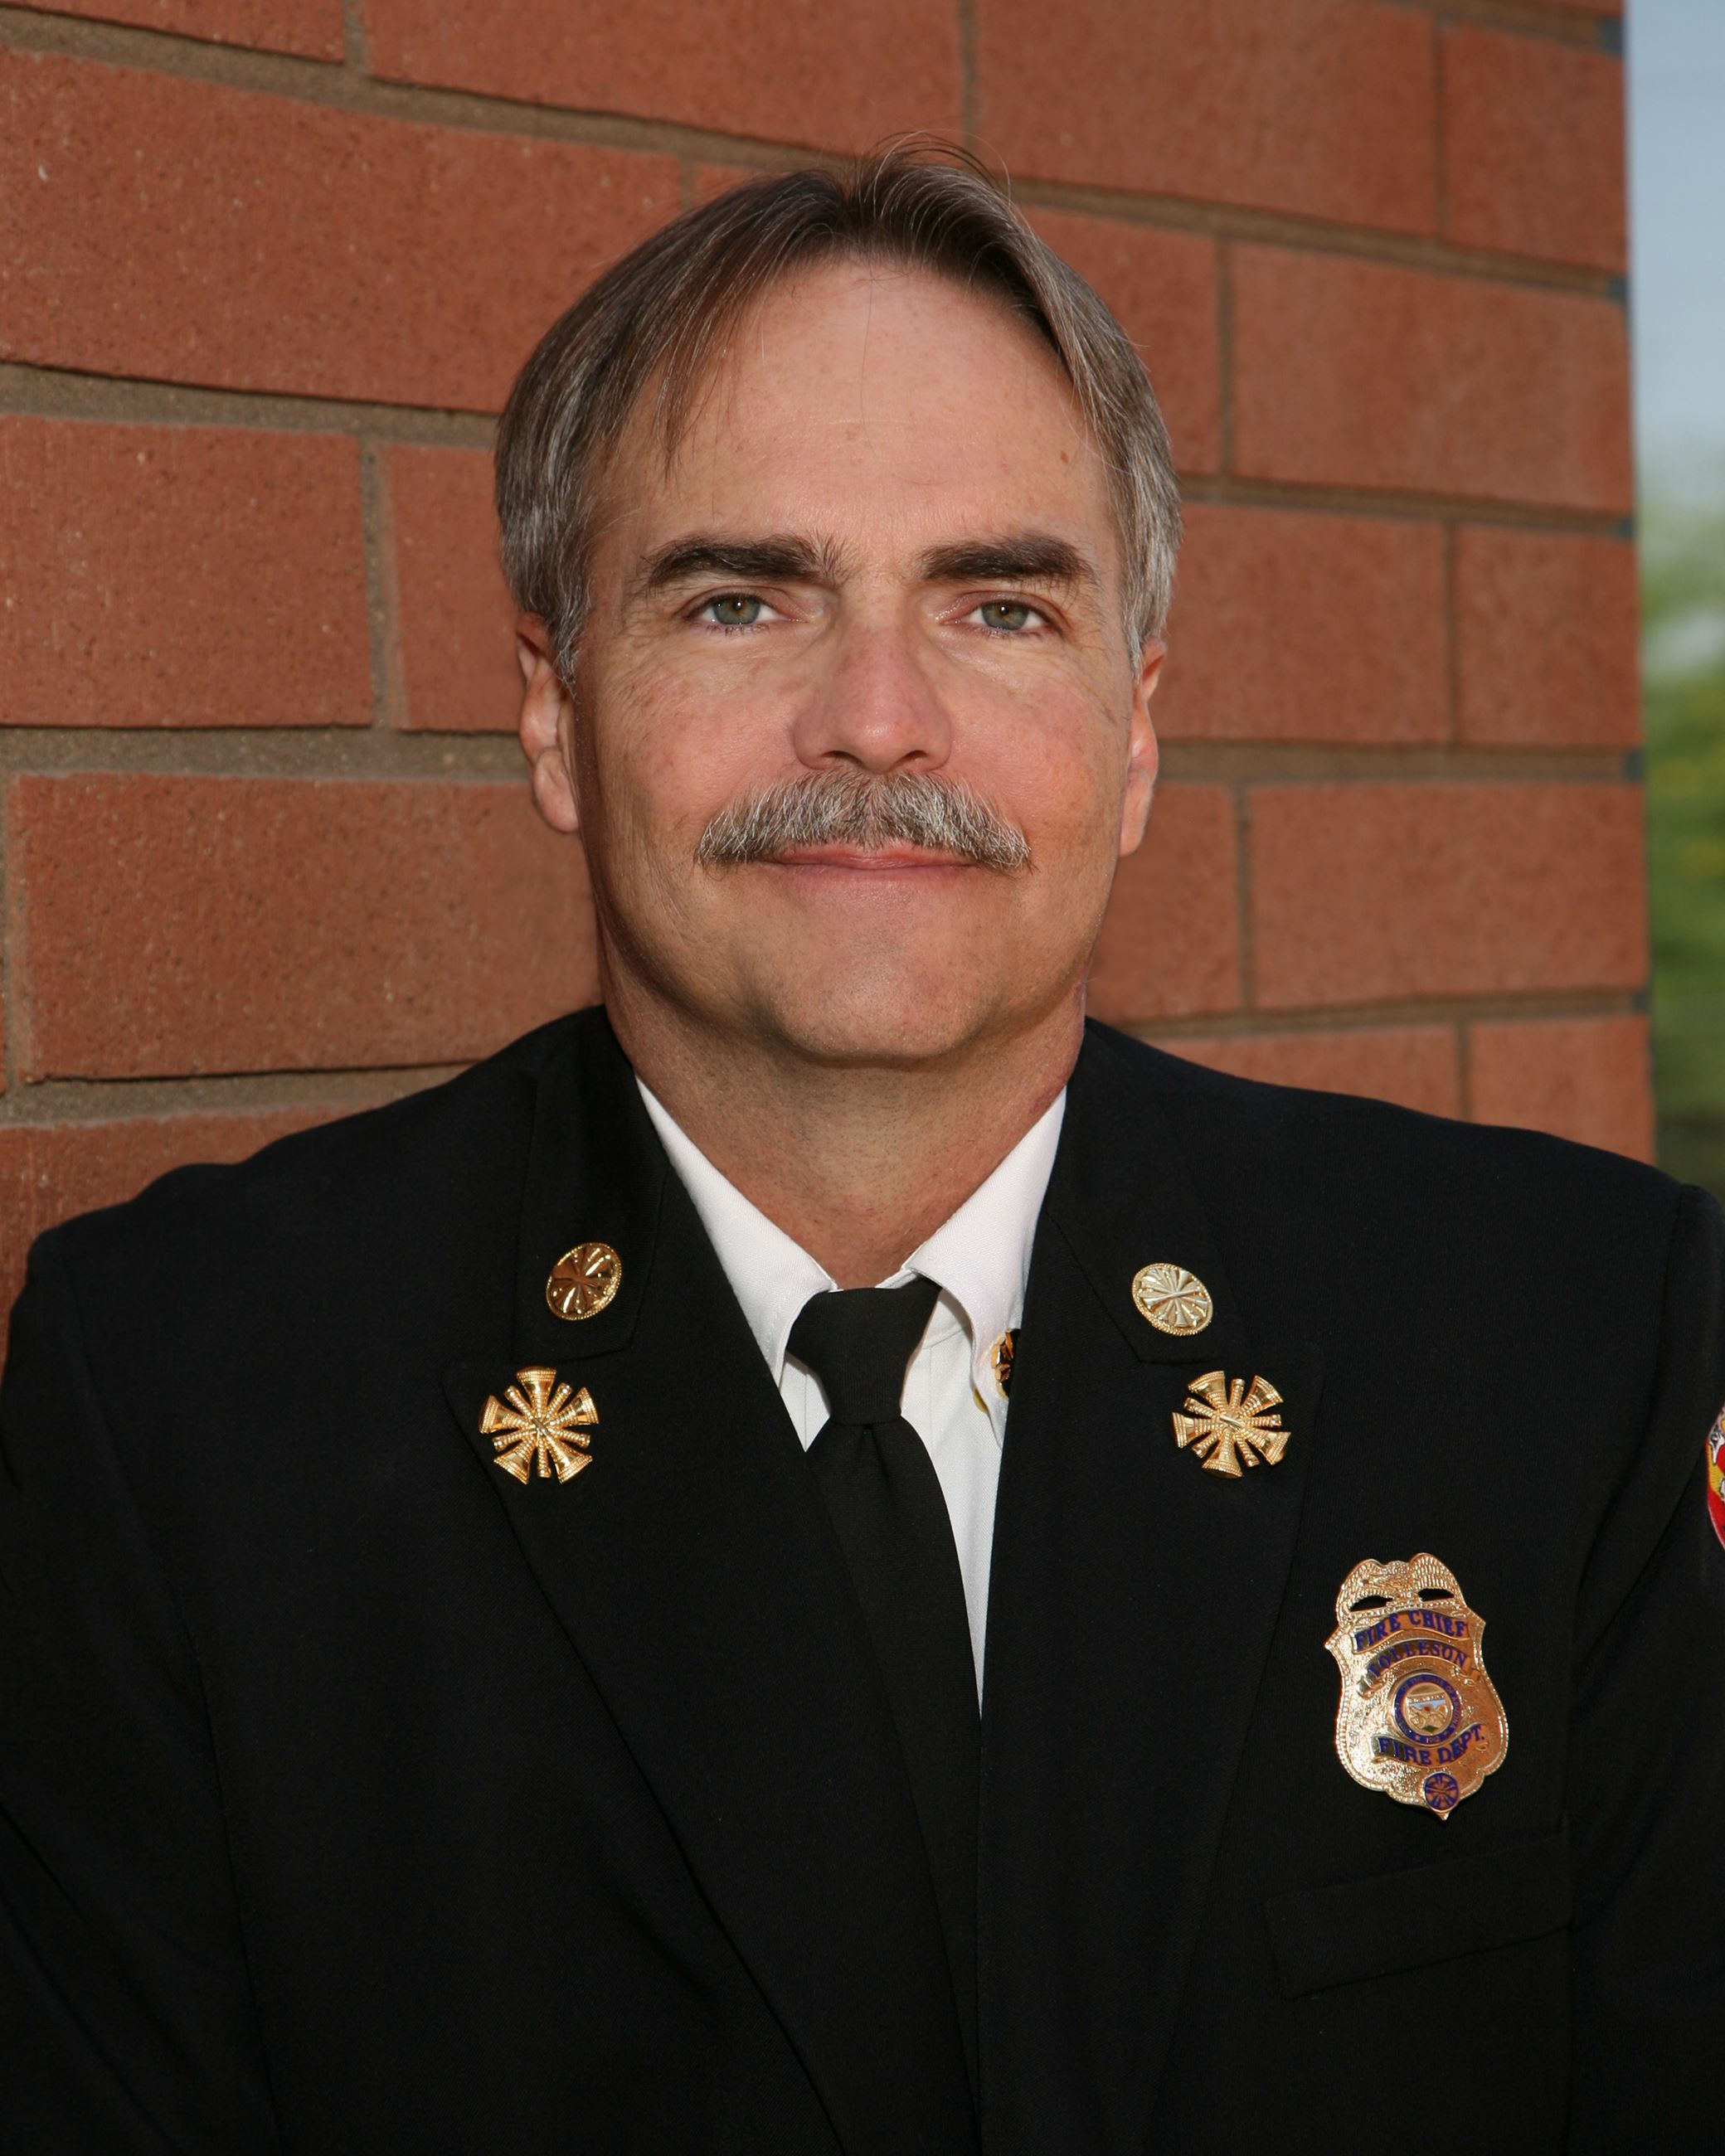 Fire Chief Photo 2011